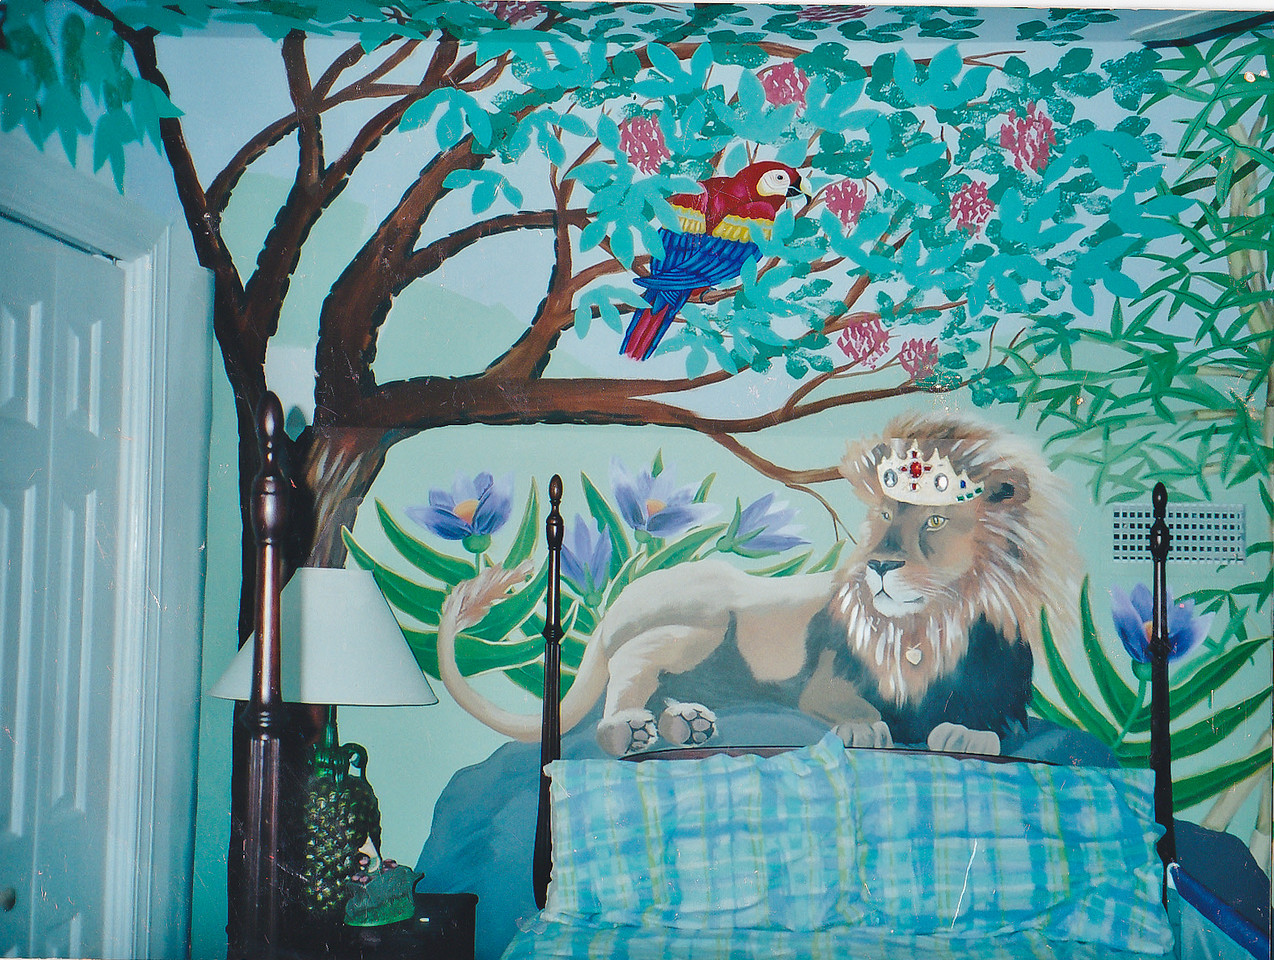 Contact: April Bensch<br /> Phone: 843-997-9917<br /> E-Mail: aprilbensch@sc.rr.com<br /> children's room jungle mural